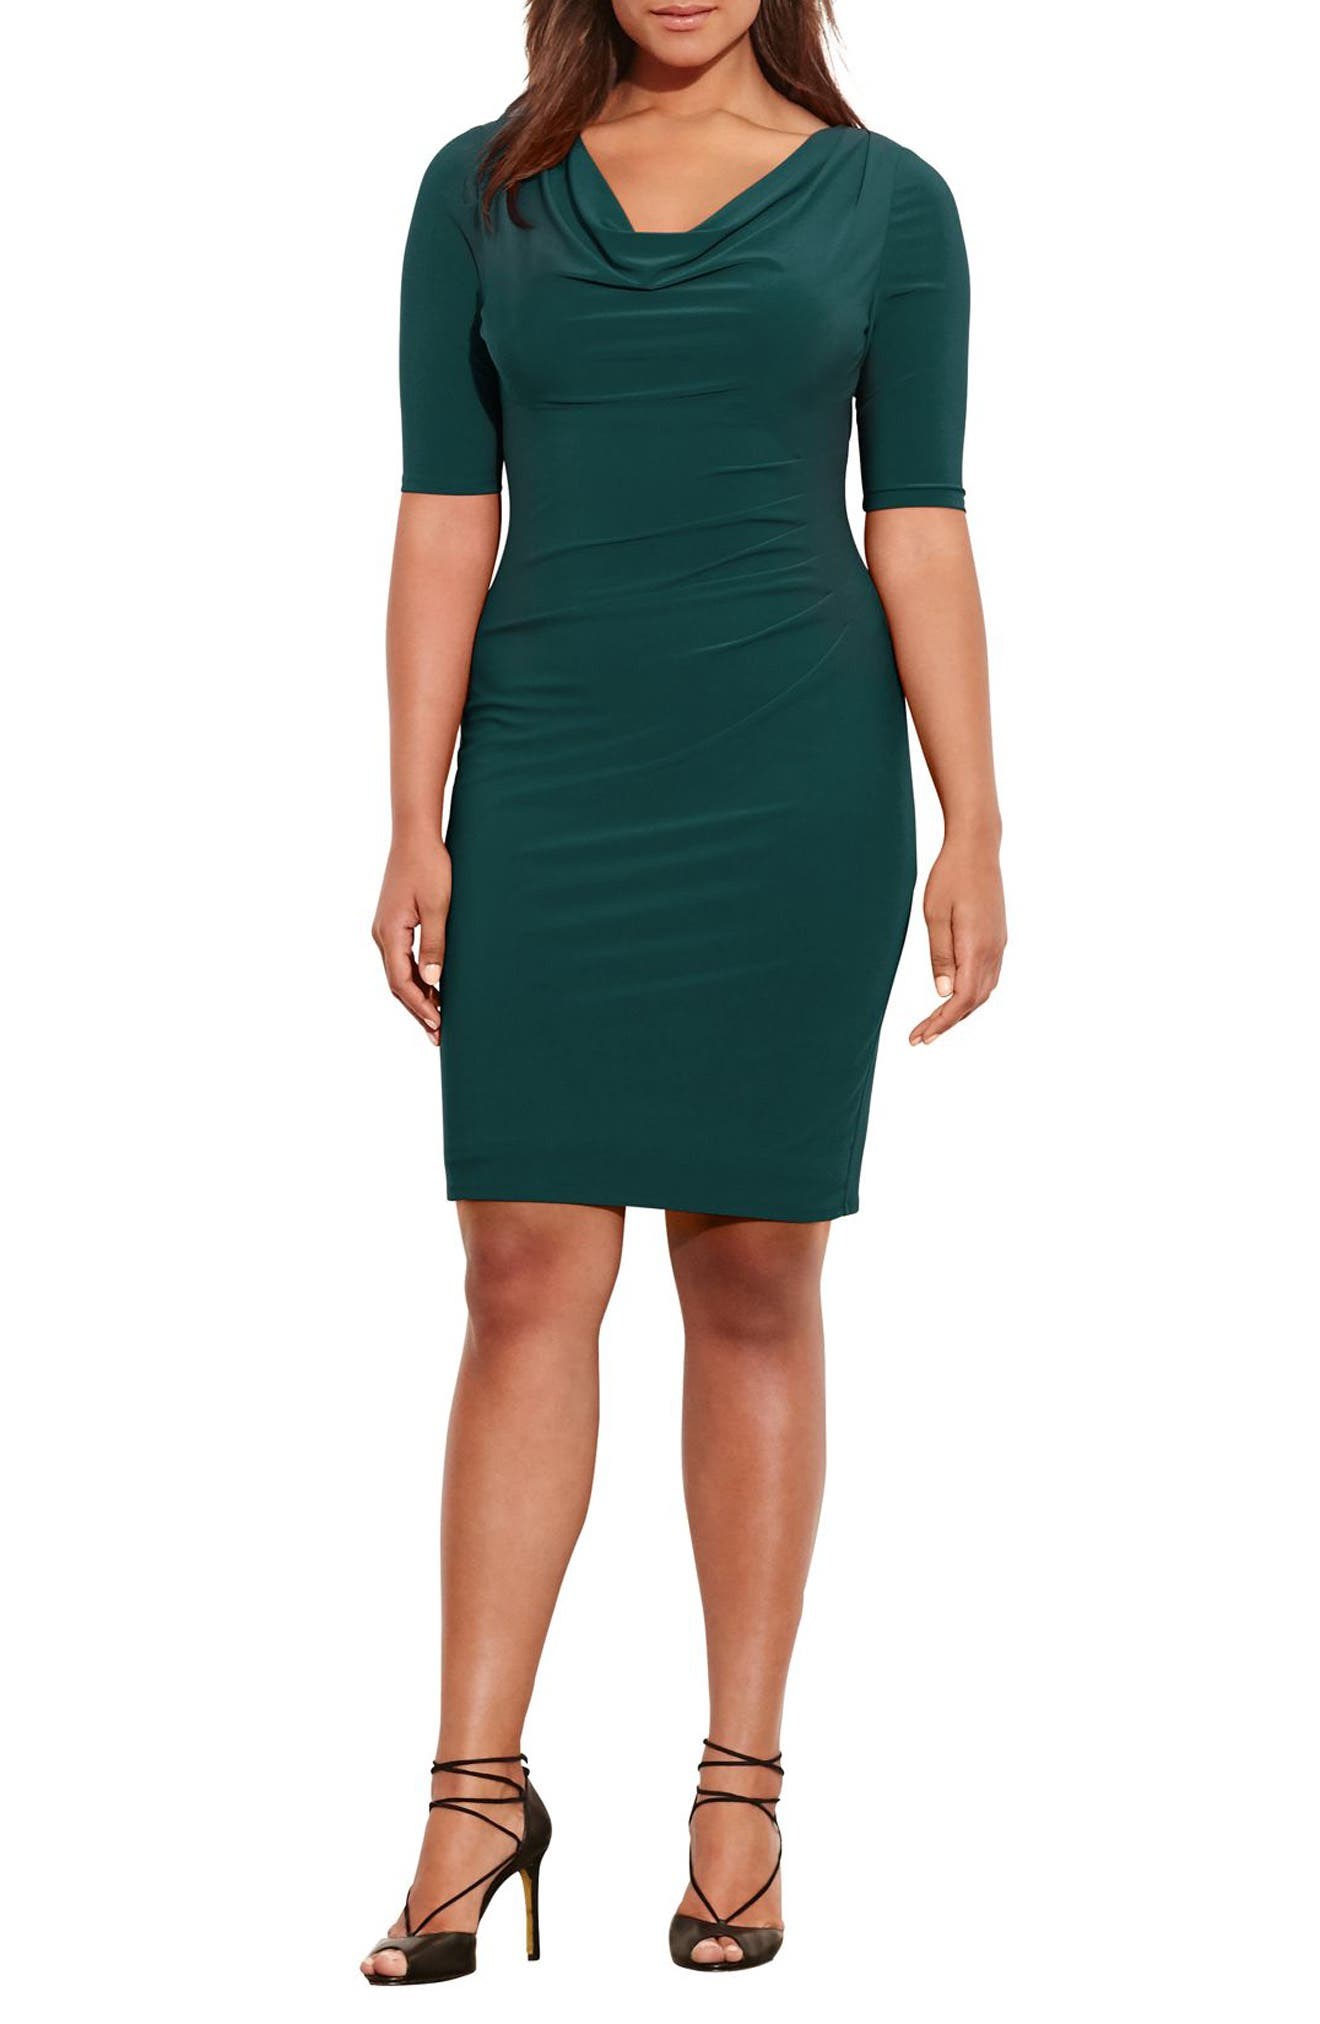 Lauren Ralph Lauren Carleton Cowl Neck Jersey Dress (Plus Size)